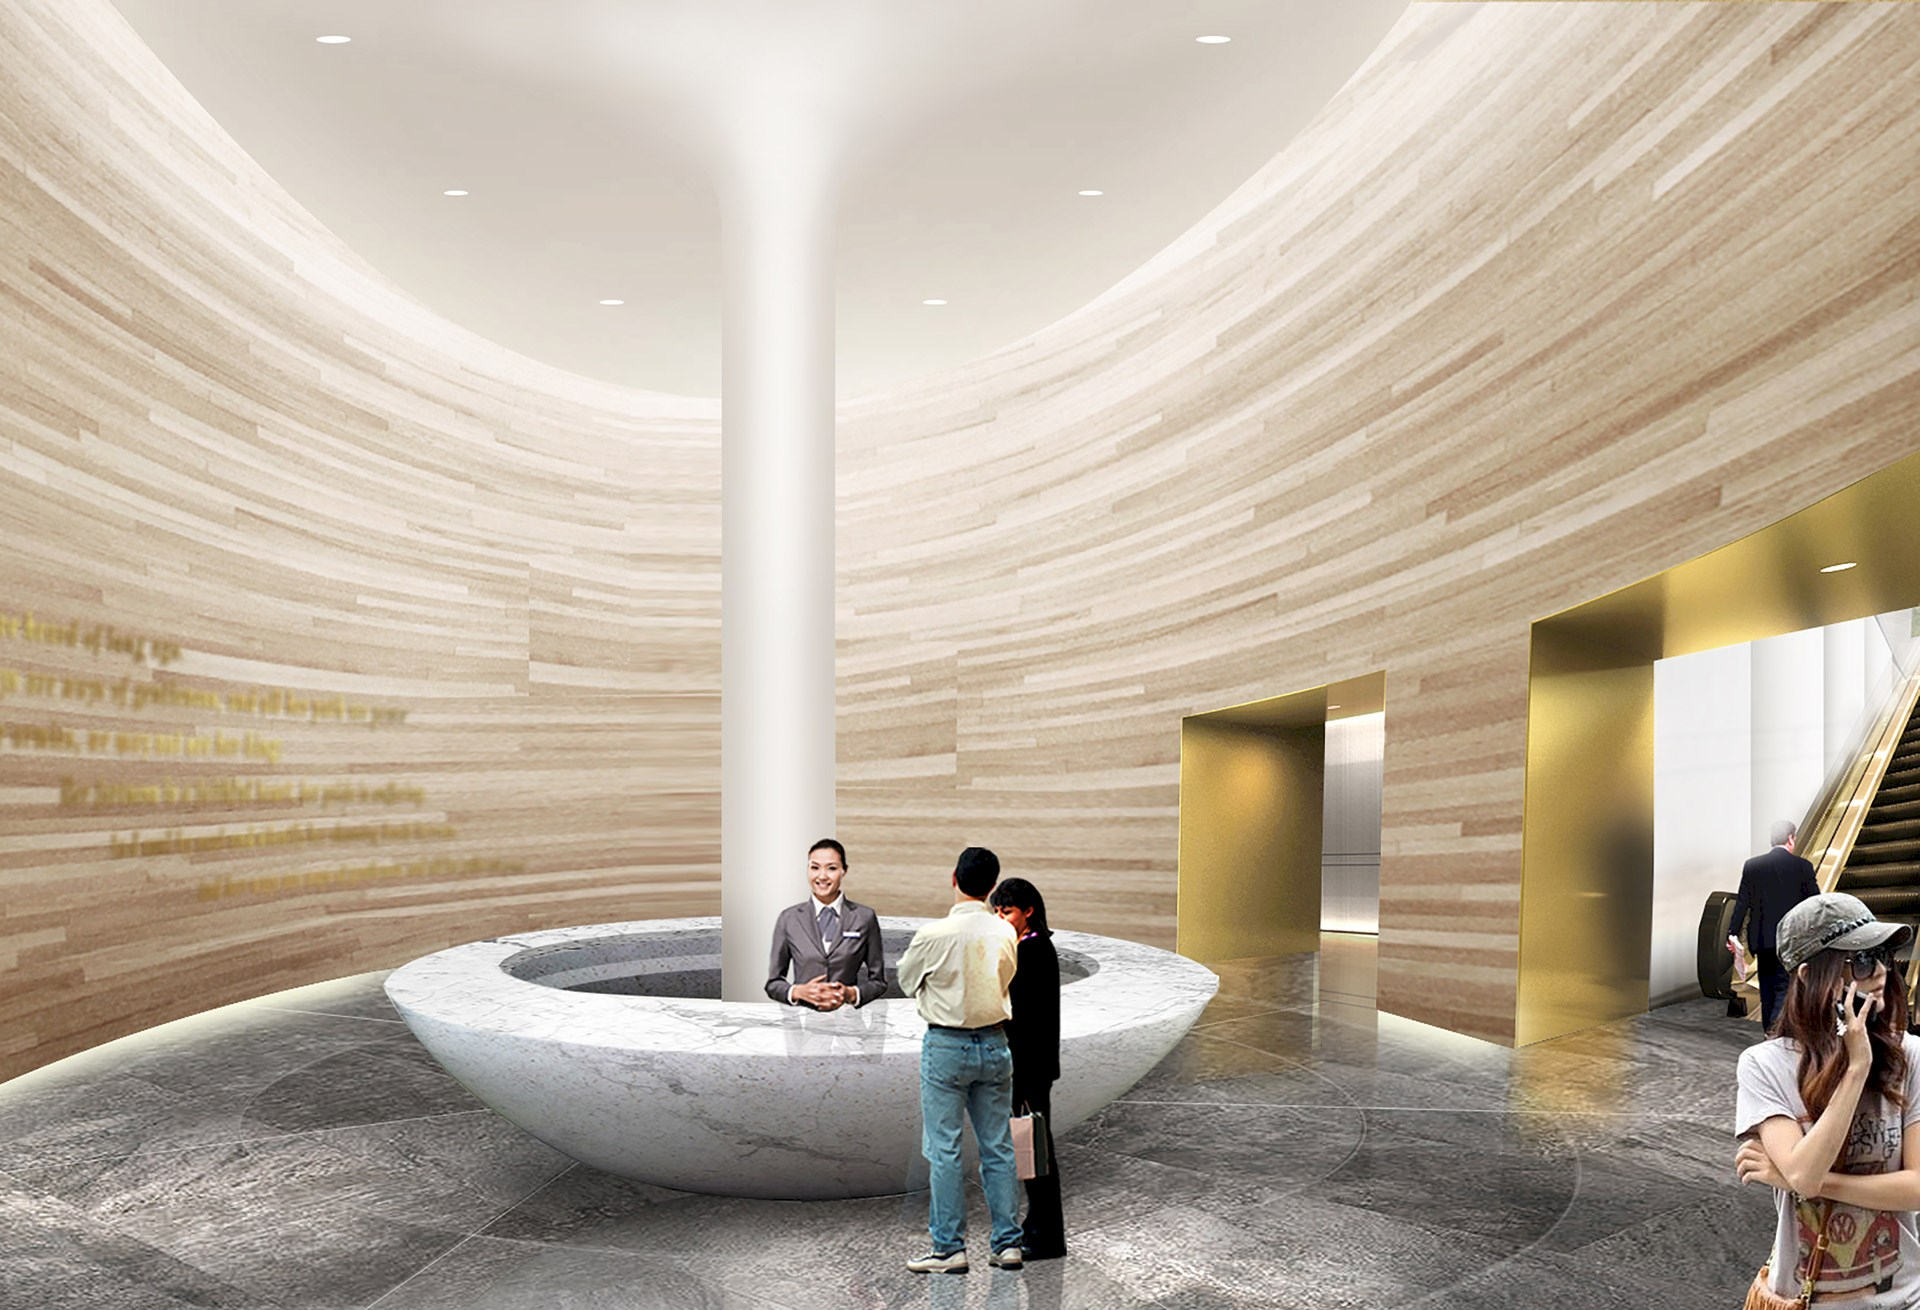 Benoy's Concept Design Reimagines a Foreign Embassy in Asia